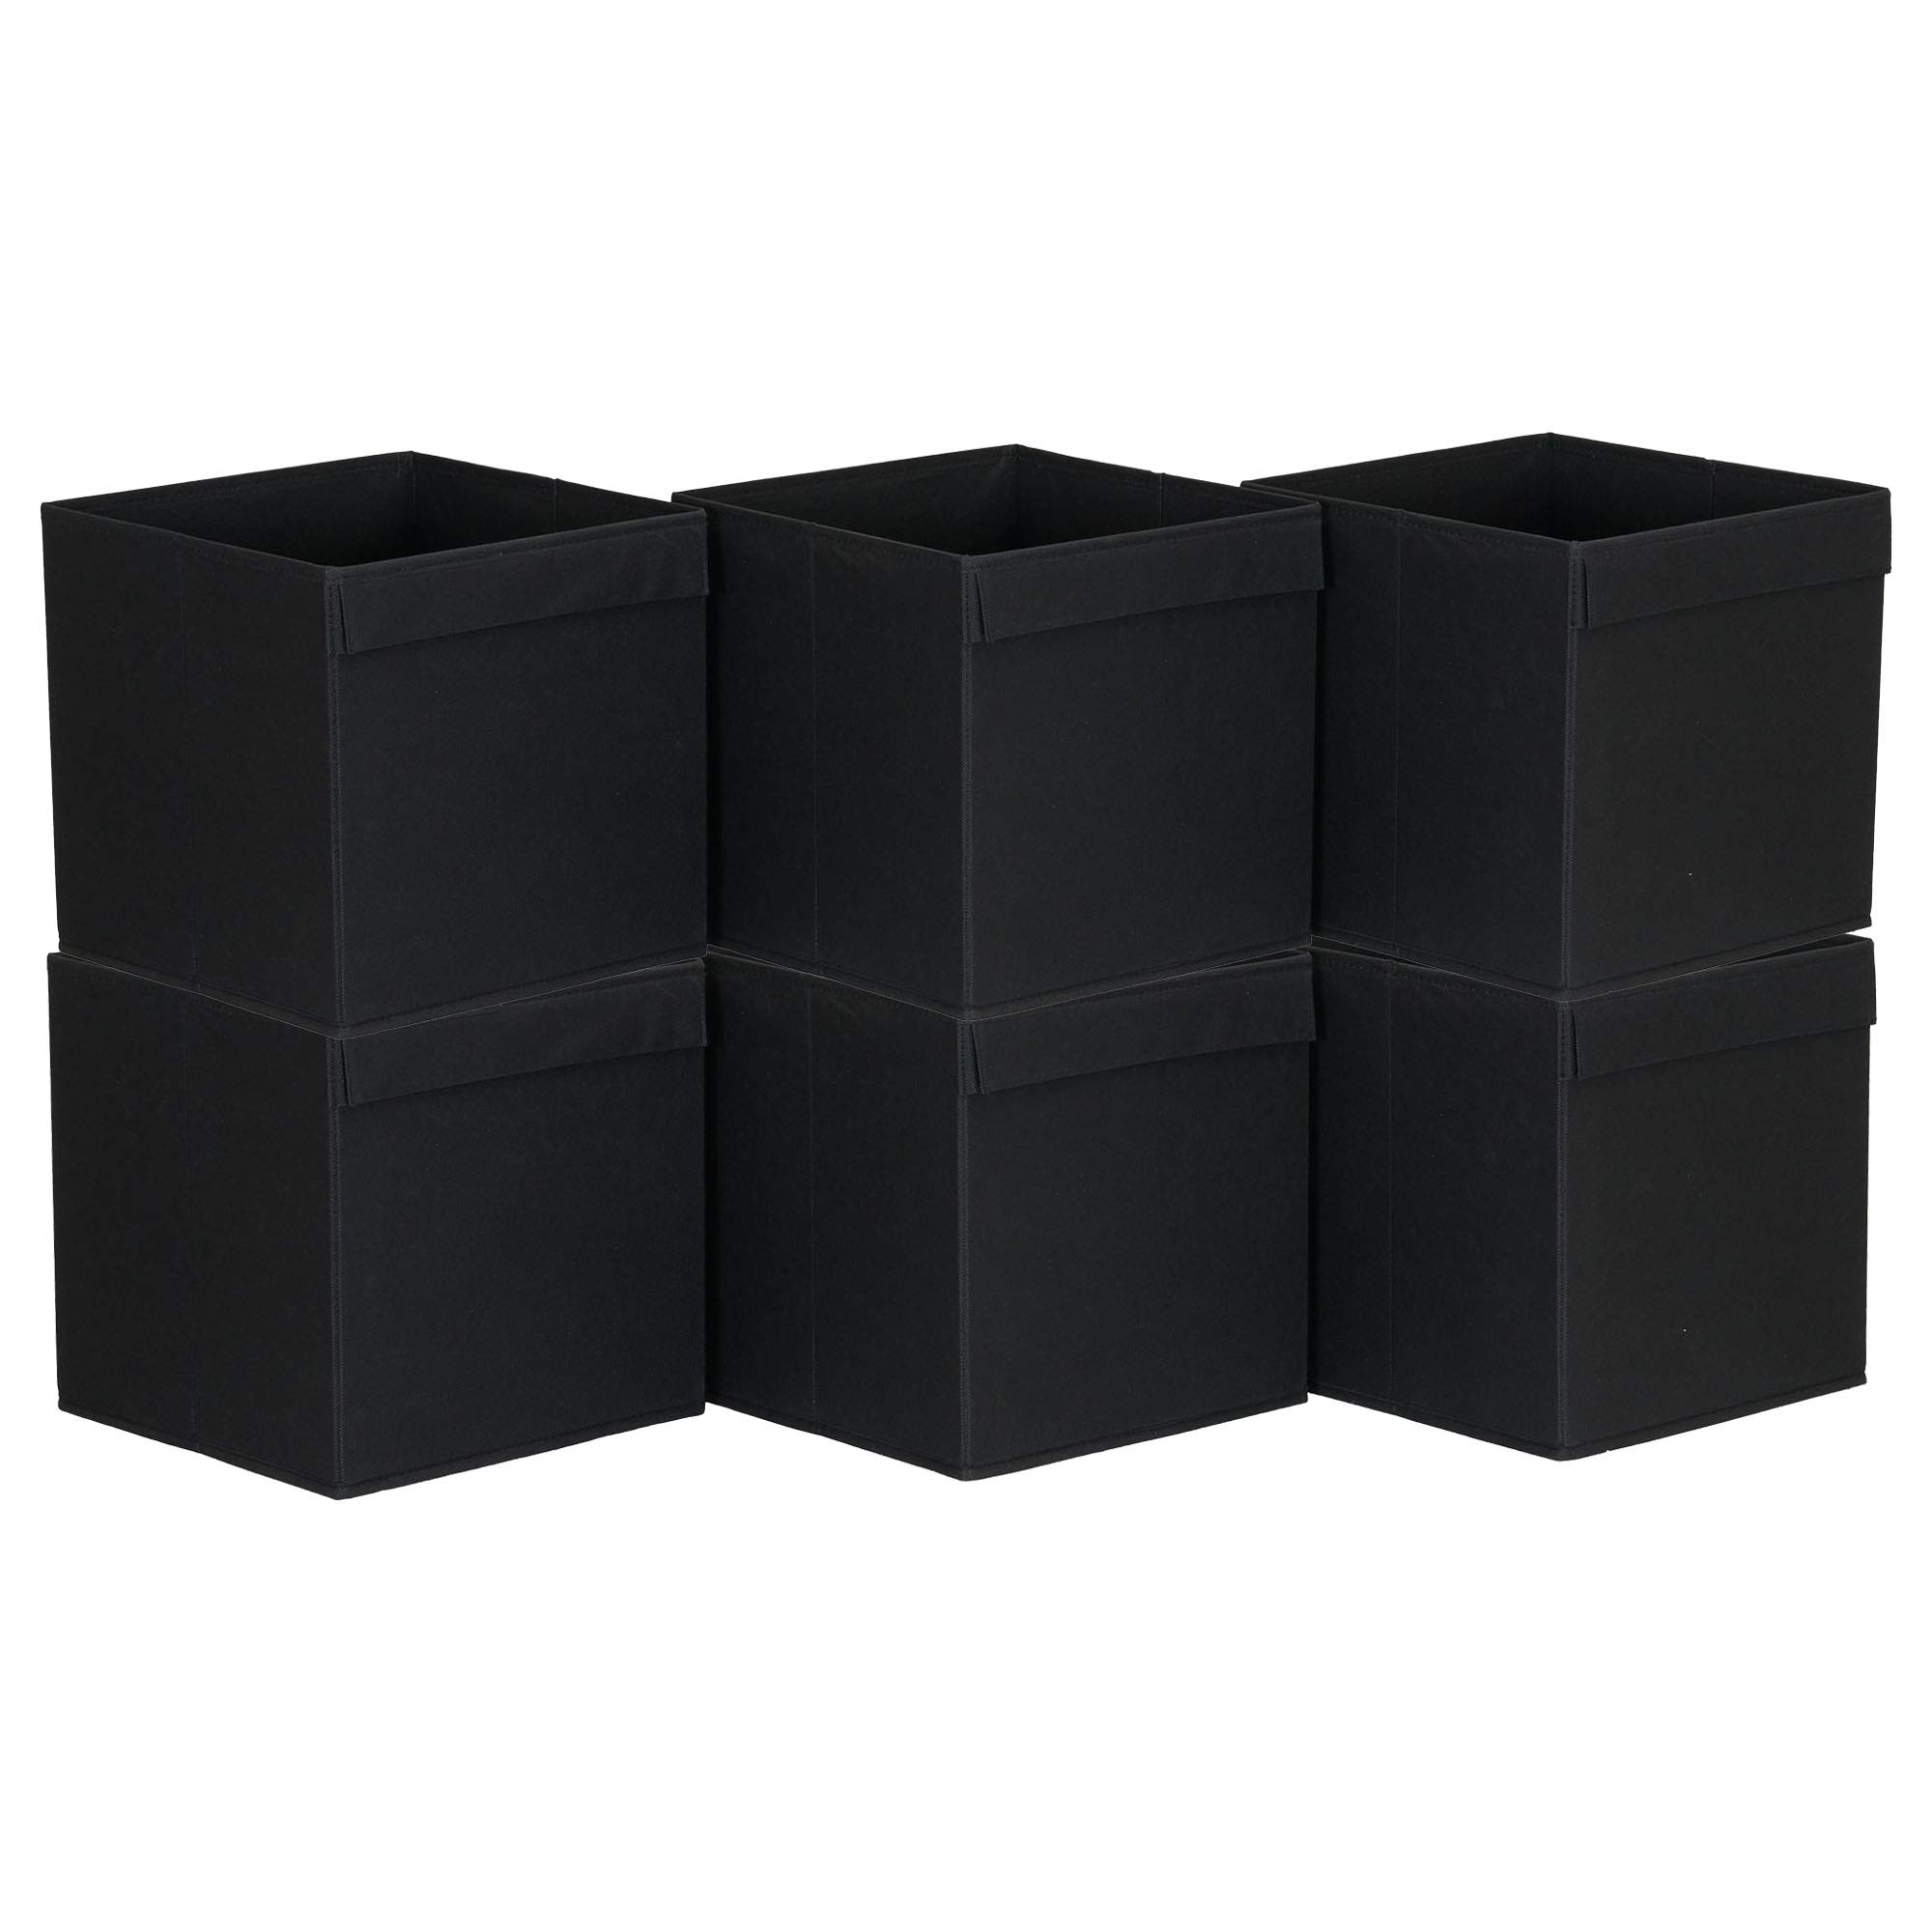 Hosuehold Essentials Household Essentials 86-1 Foldable Fabric Storage Bins | Set of 6 Cubby Cubes with Flap Handle, Black by Household Essentials